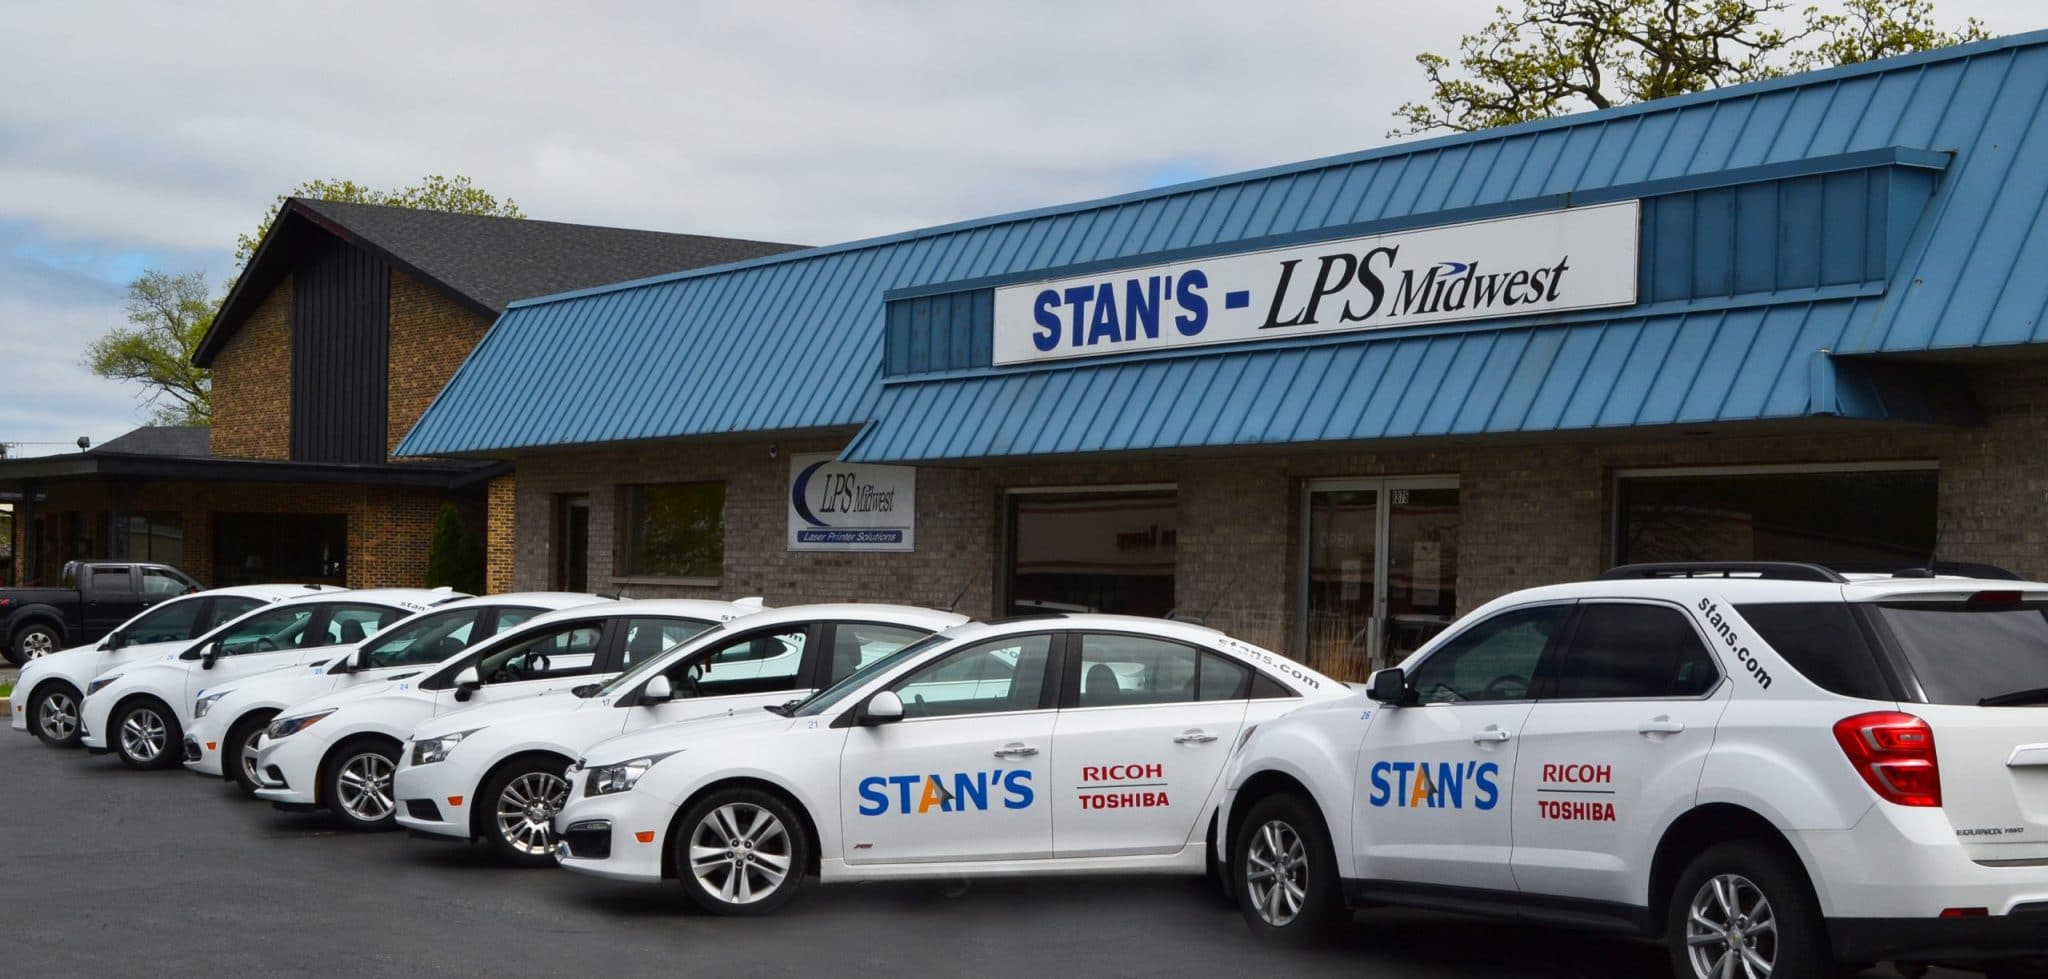 About Stans - Exterior of Our Office